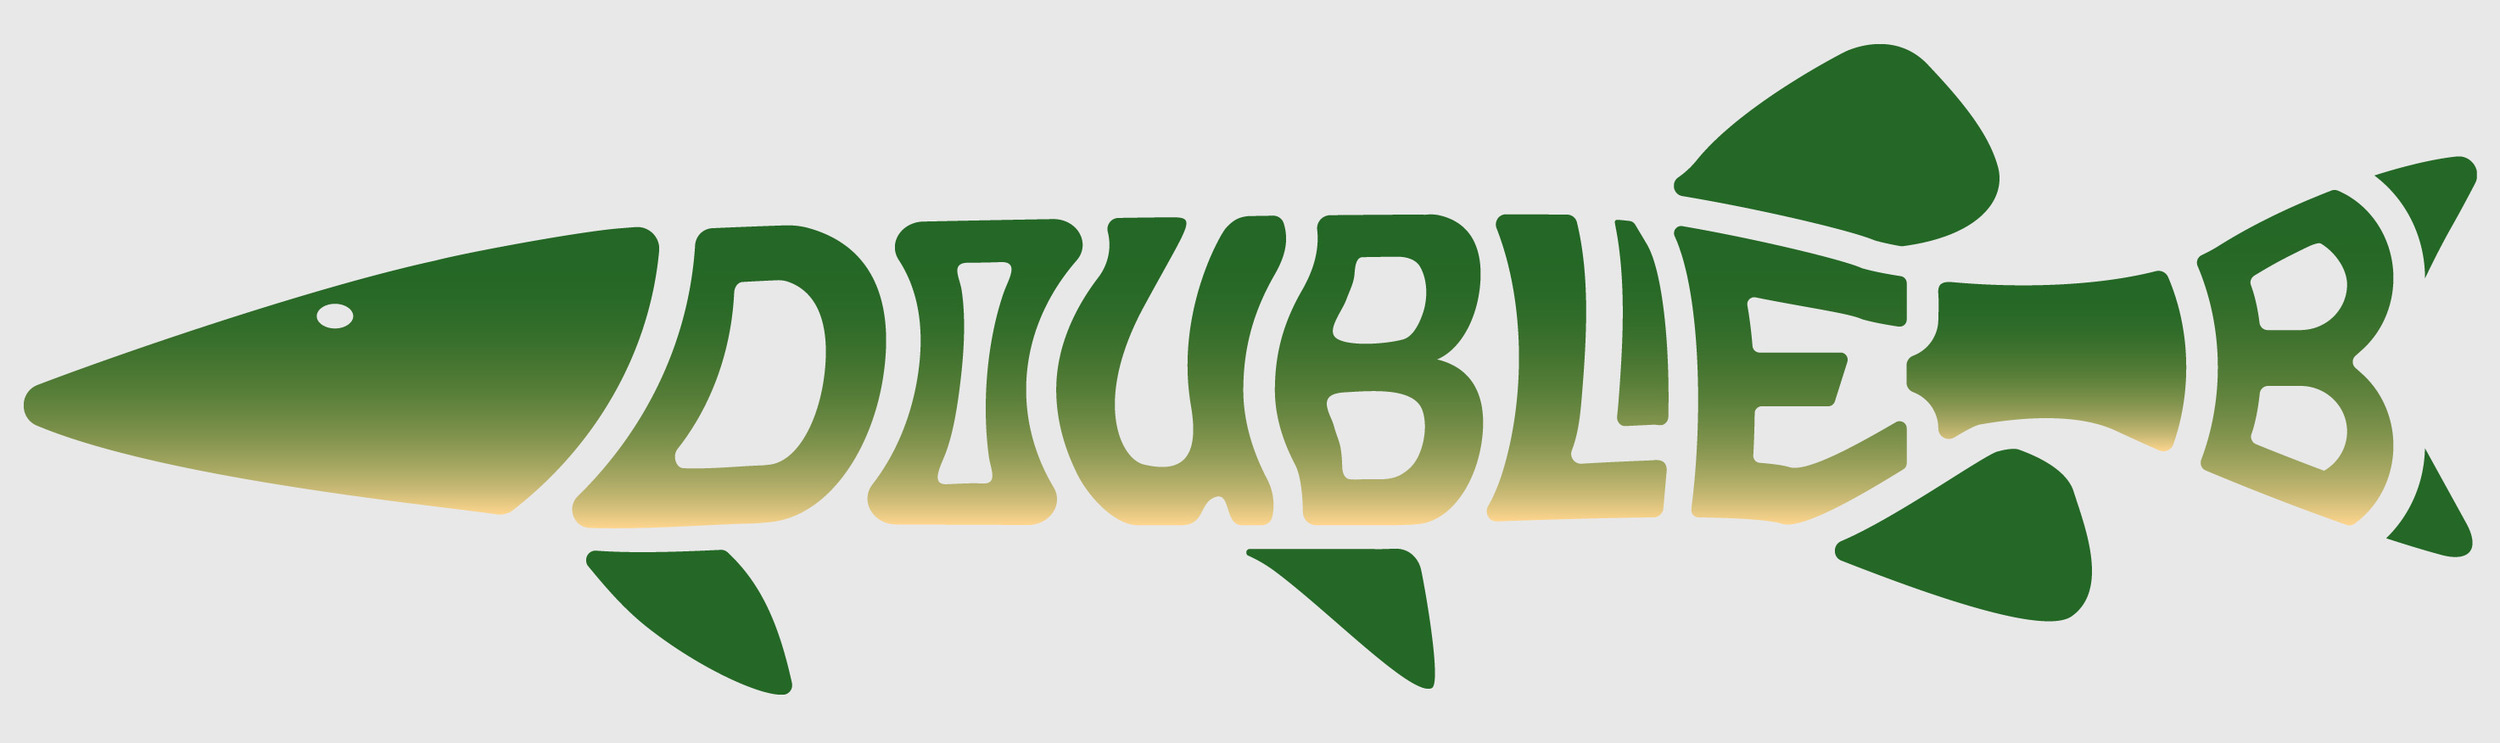 Muskie shaped logo for Double B, a maker of Muskie baits.